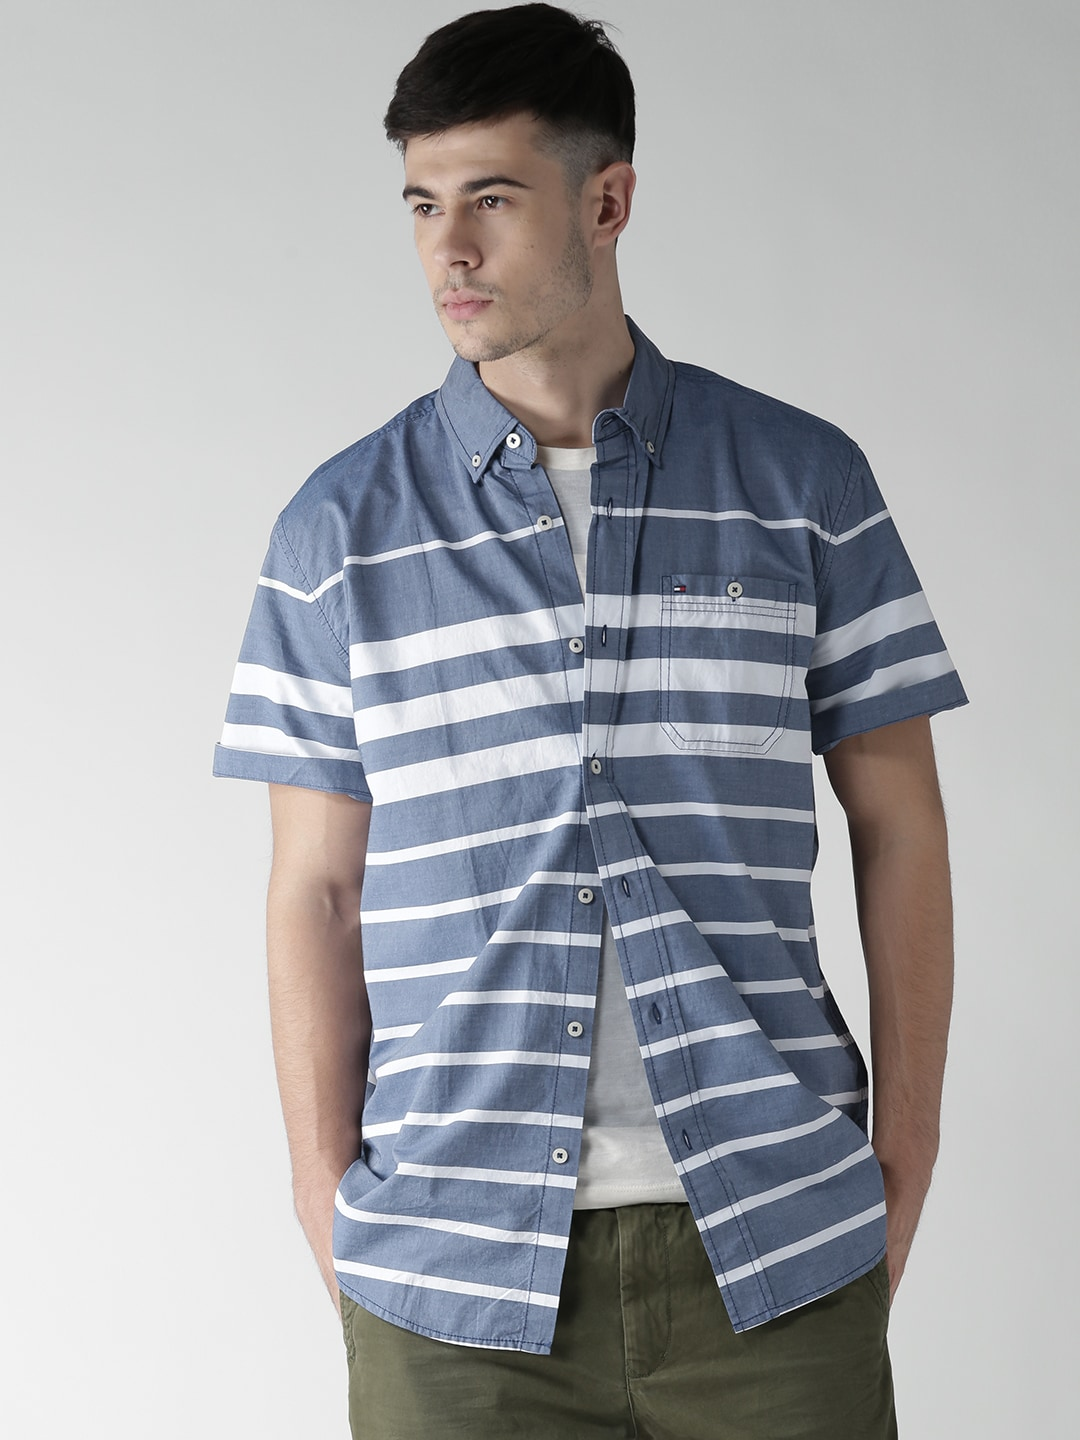 6b0f6363cf Shirts - Buy Shirts for Men